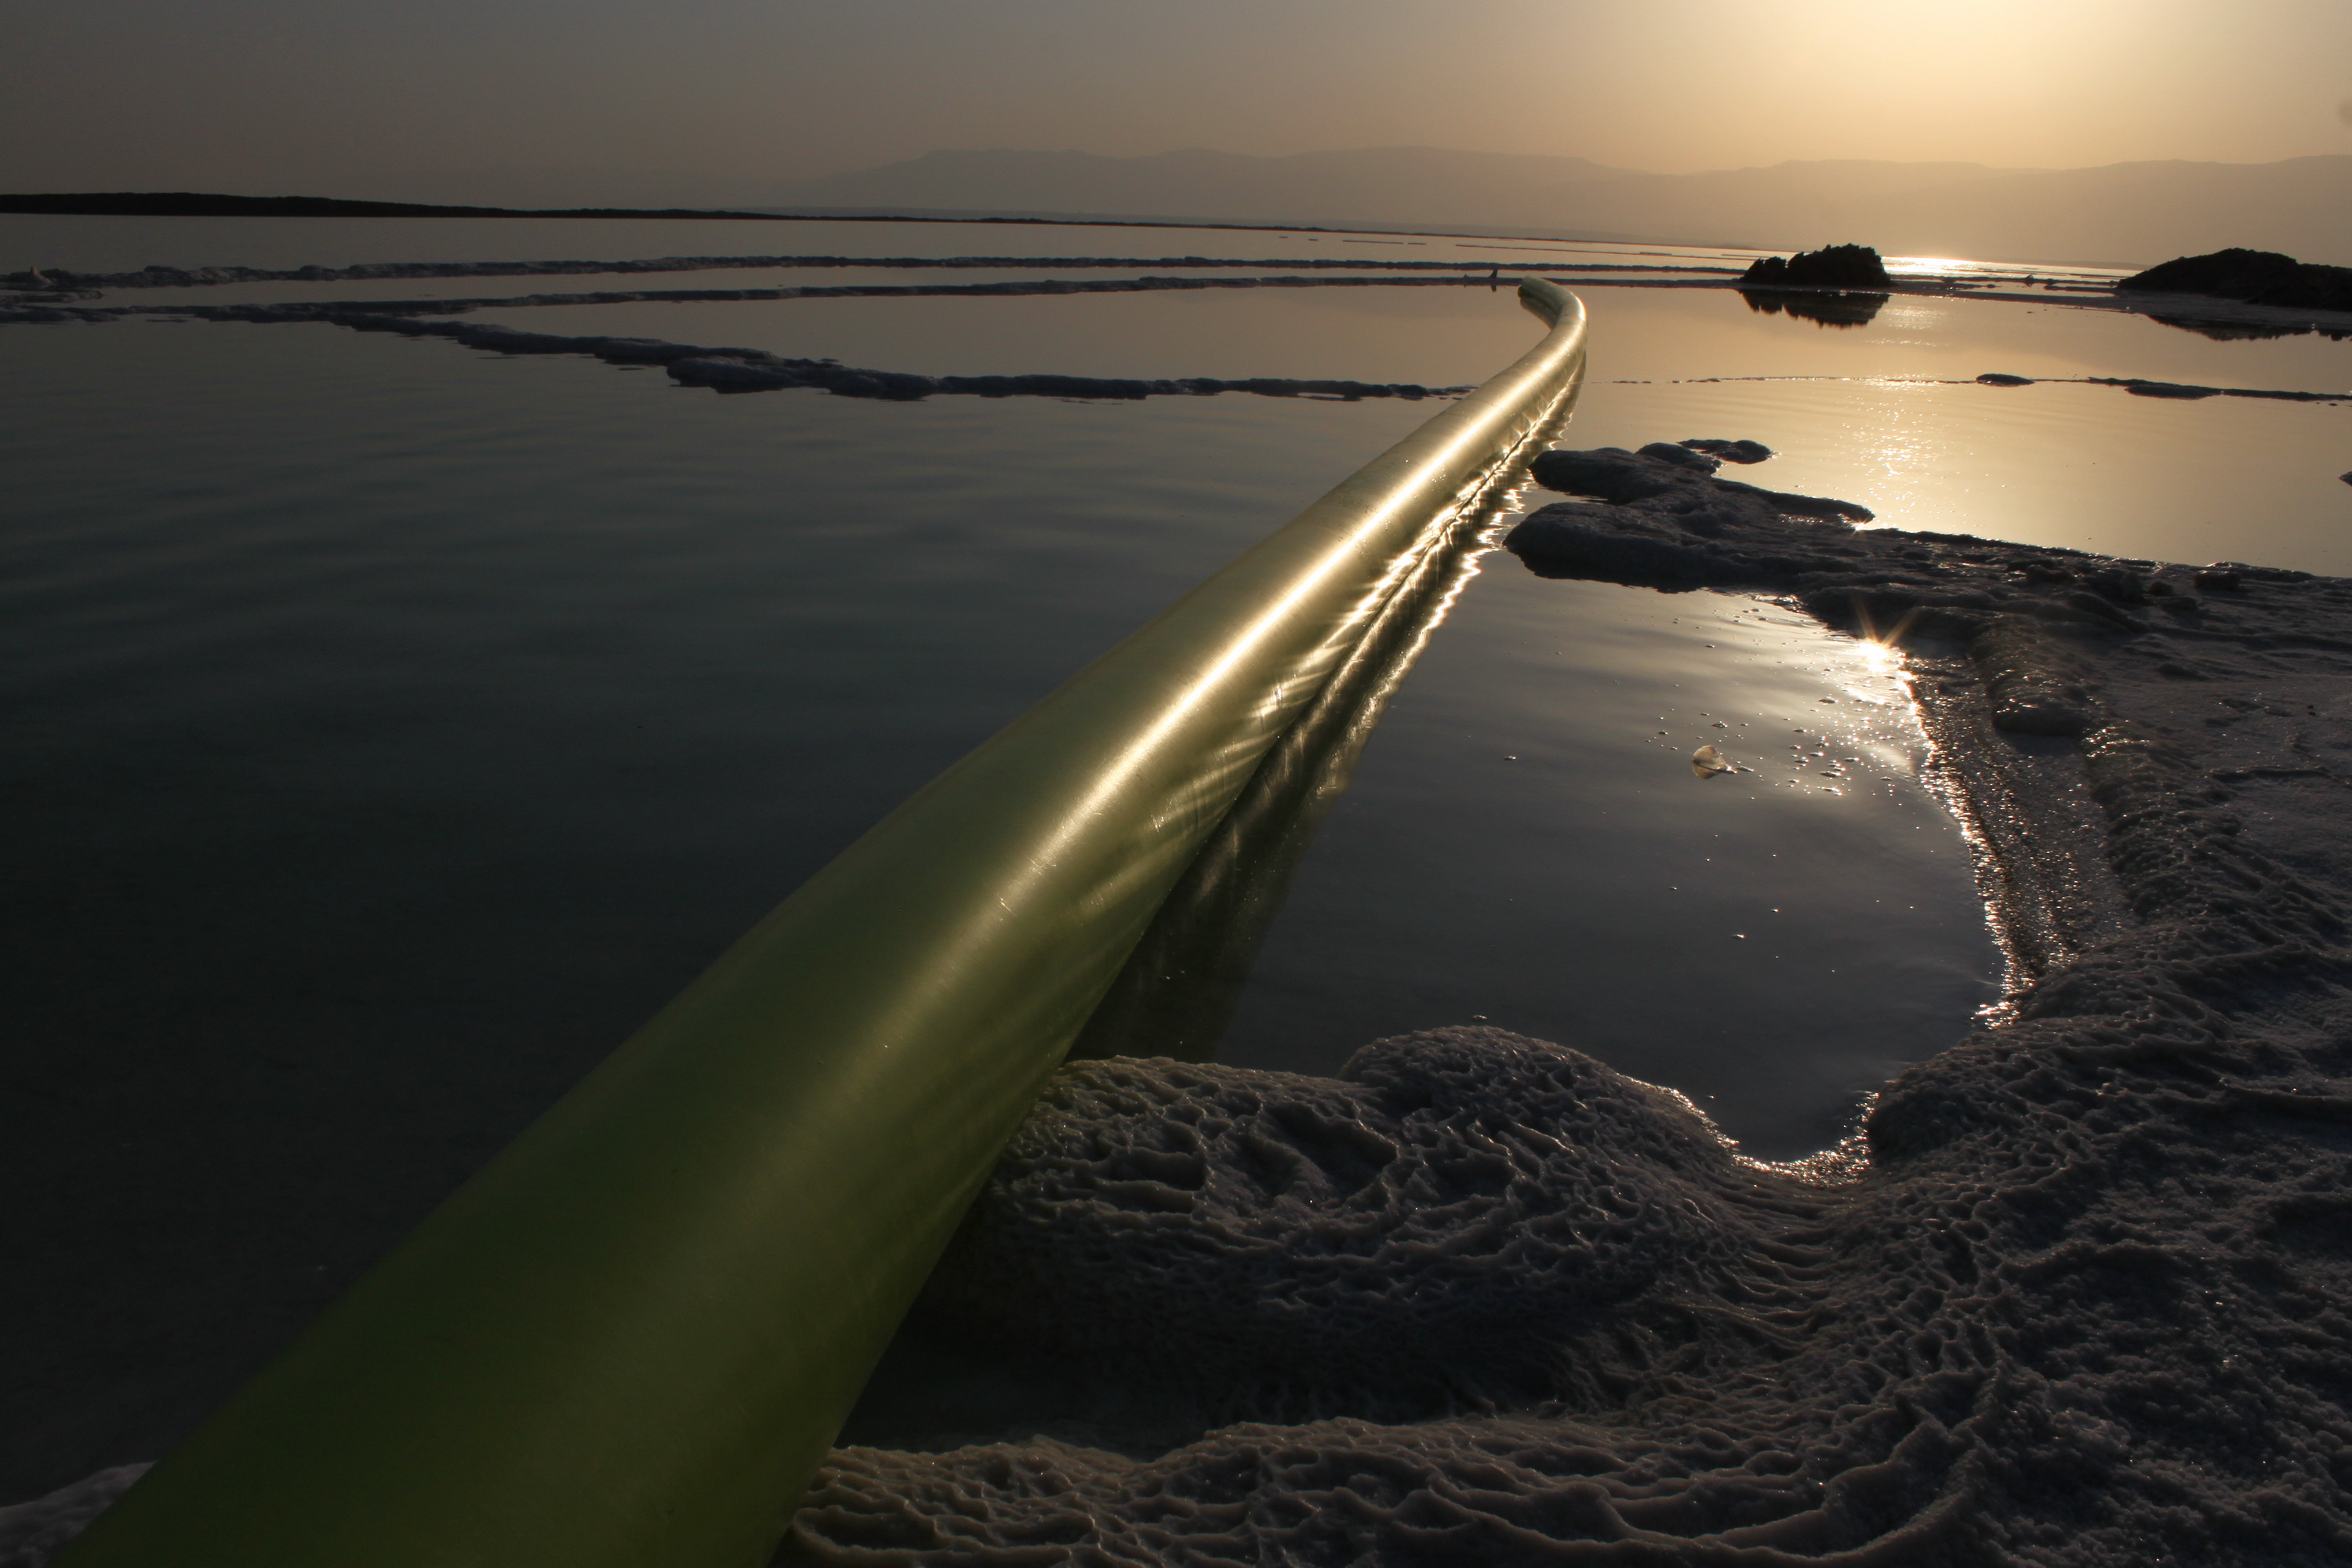 Line in the Dead Sea